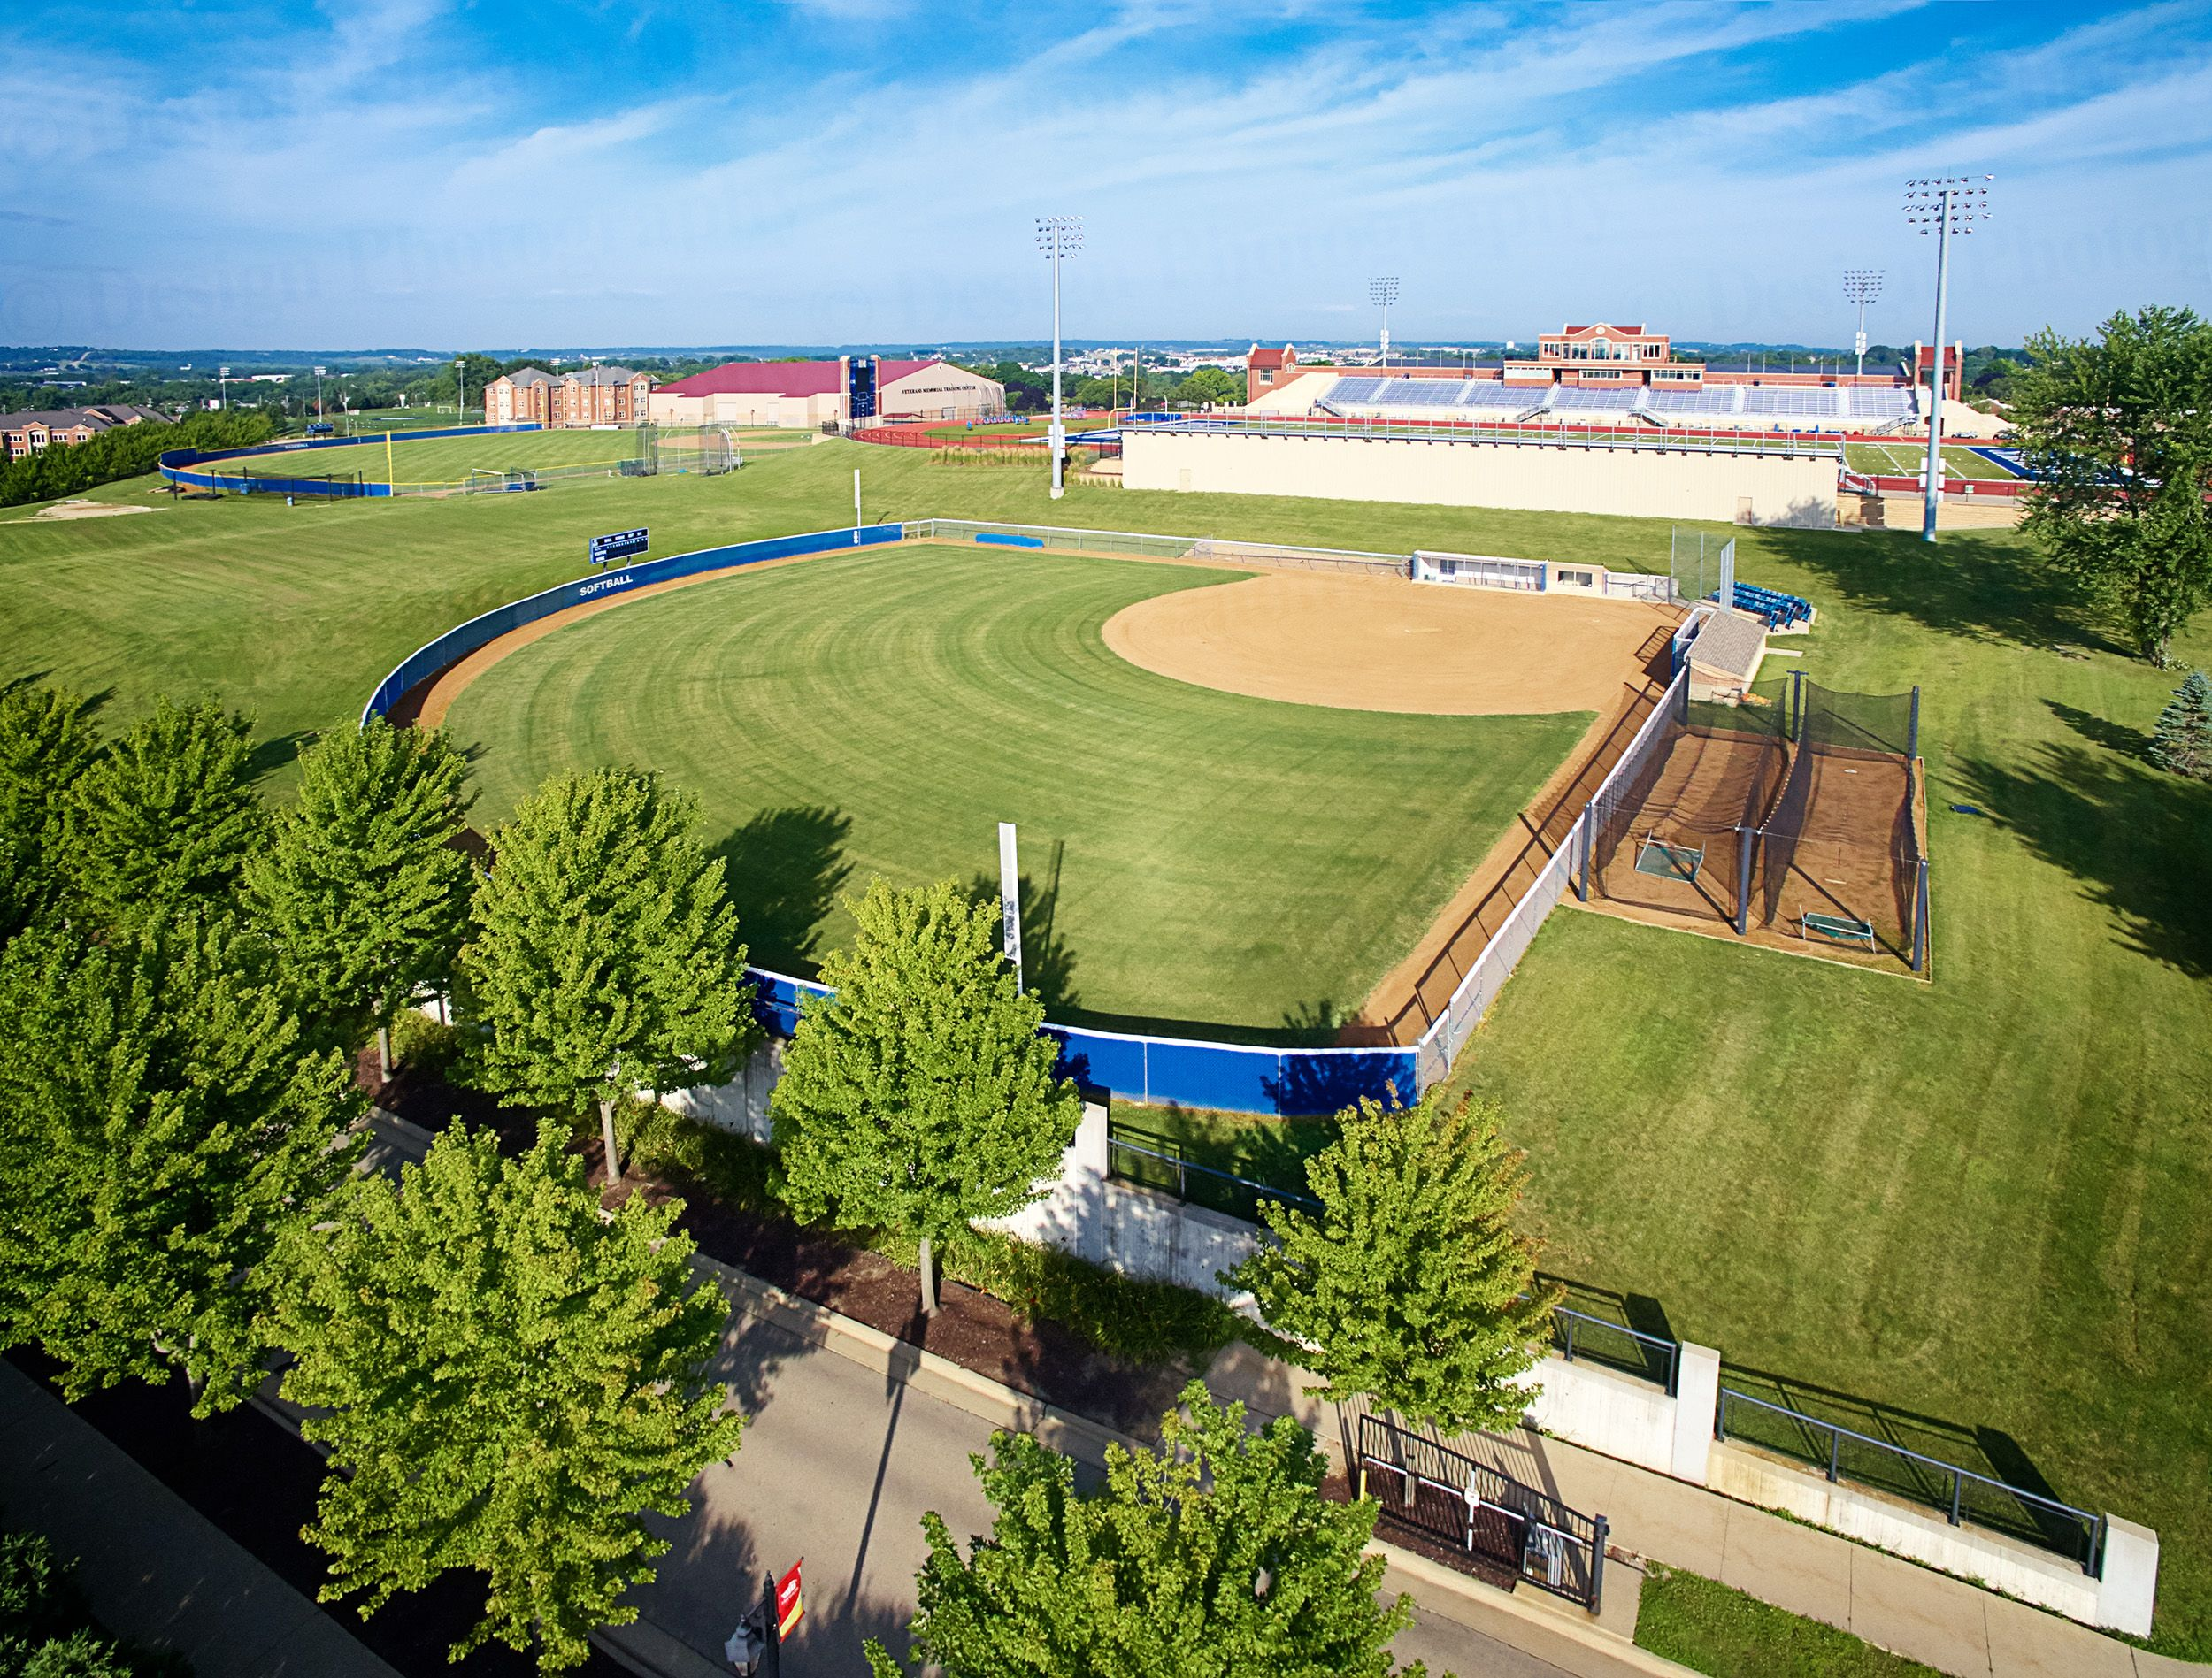 Baseball field at University of Dubuque